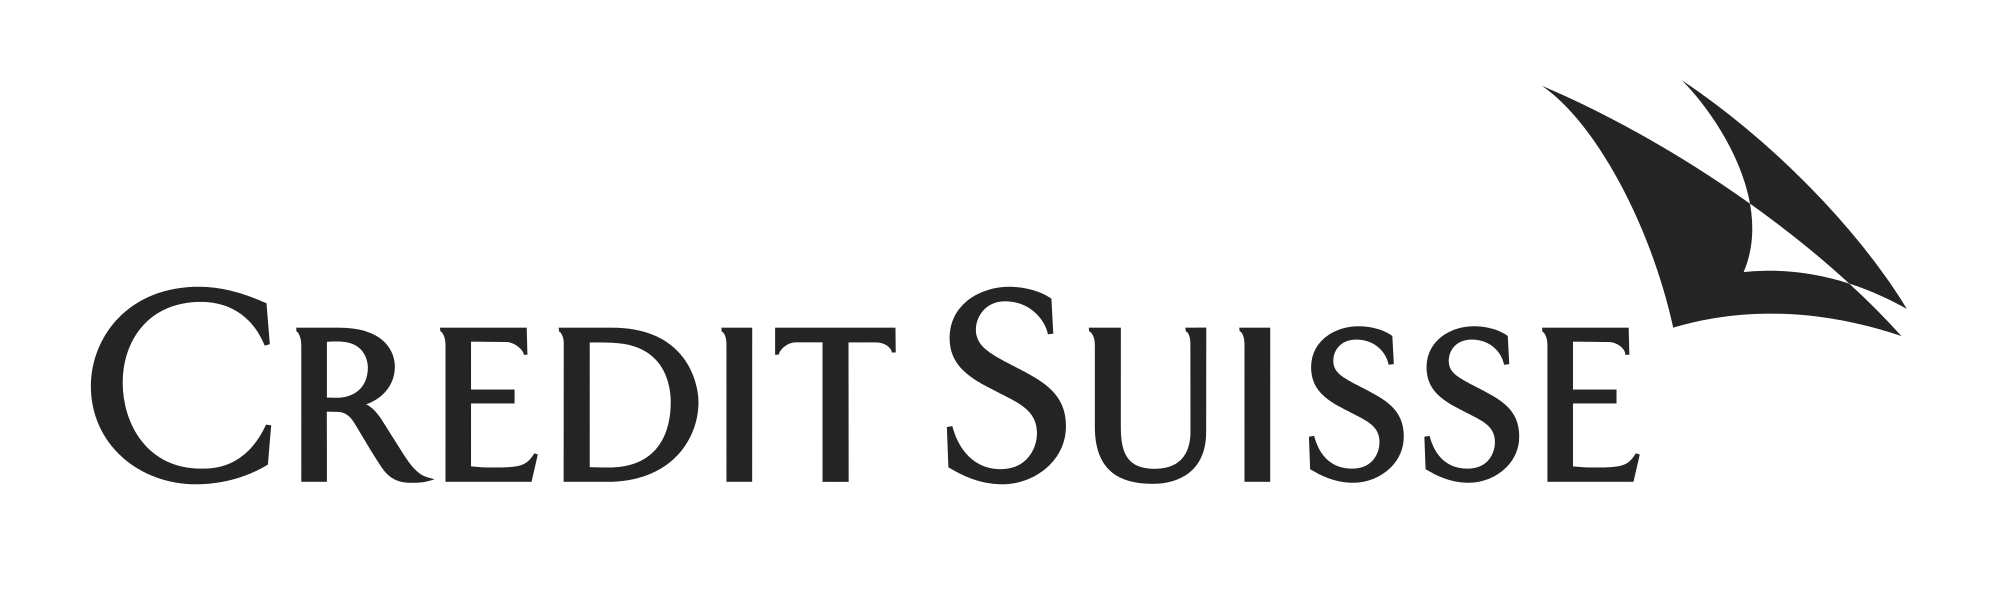 Credit_Suisse_Logo_Grayscale.png